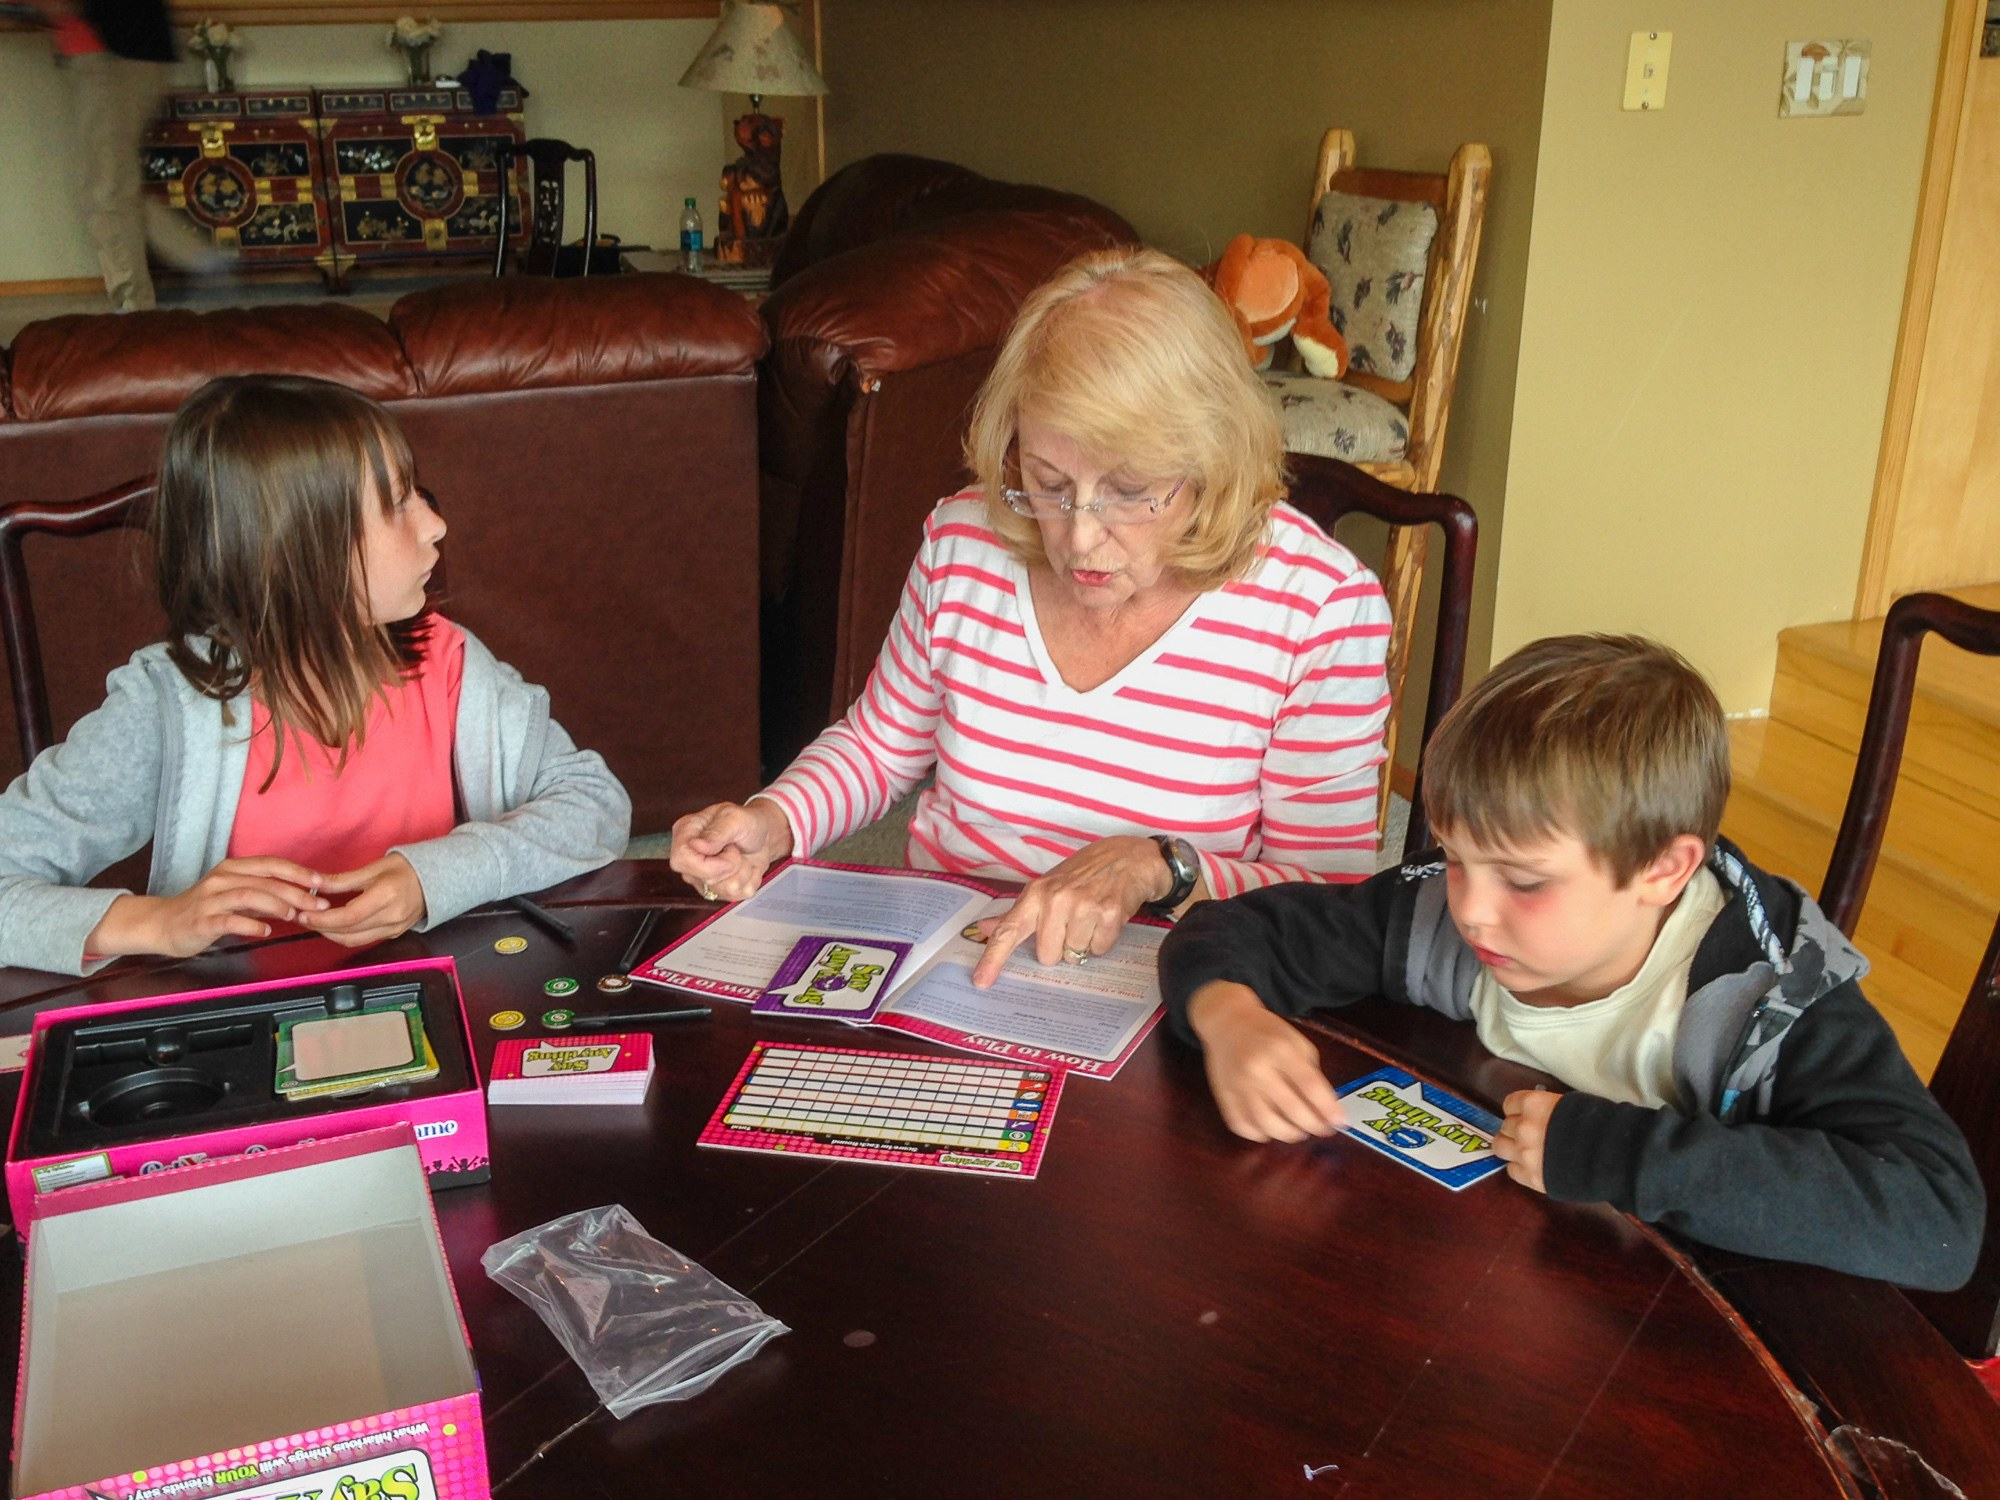 Grandma and kids playing board game together on family reunion vacation